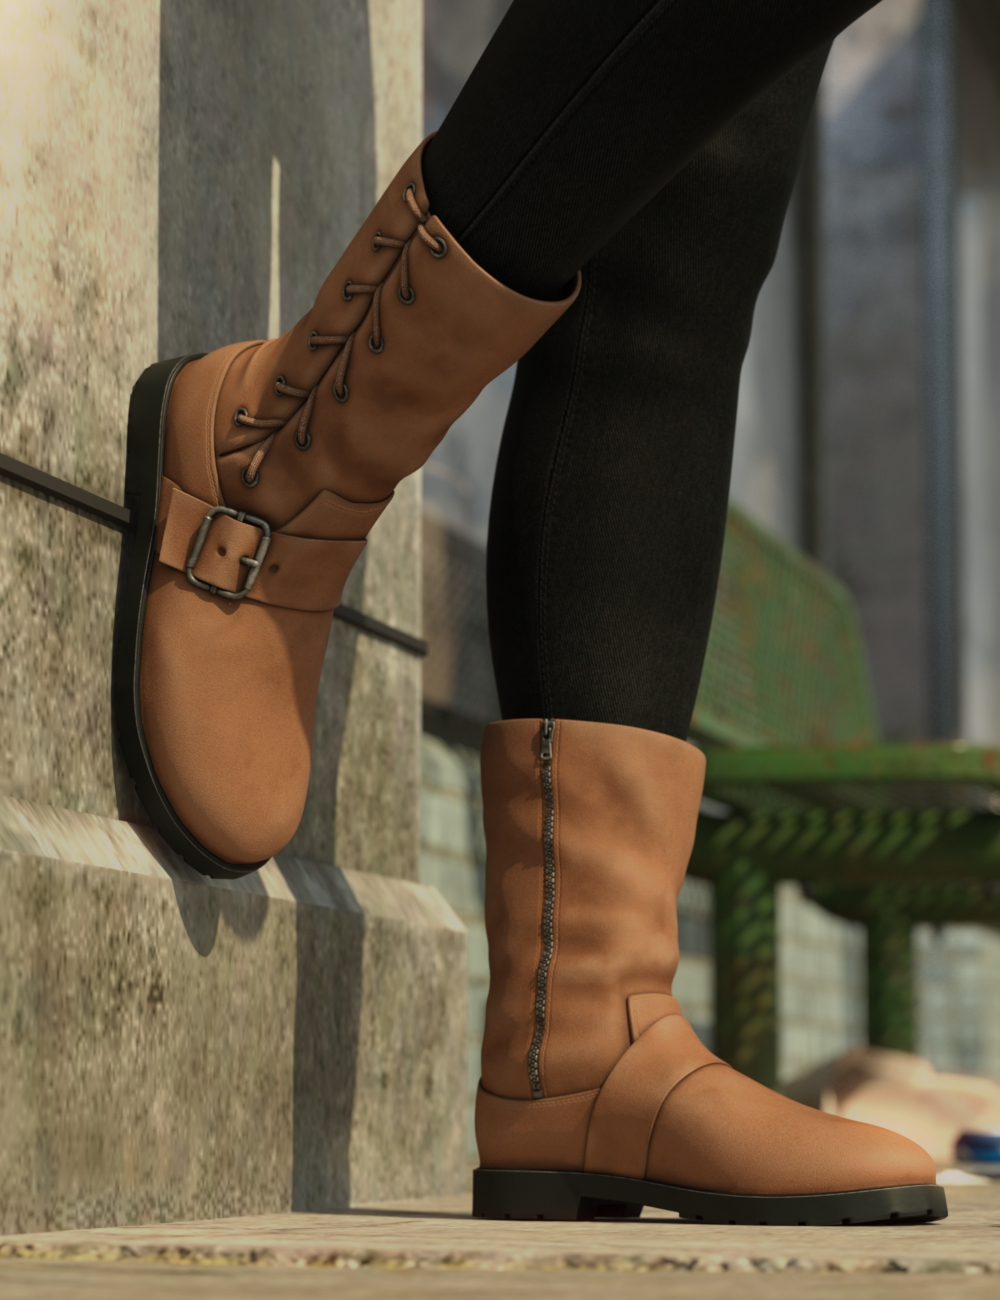 Side Laced Boots for Genesis 8 Female by: Predatron, 3D Models by Daz 3D